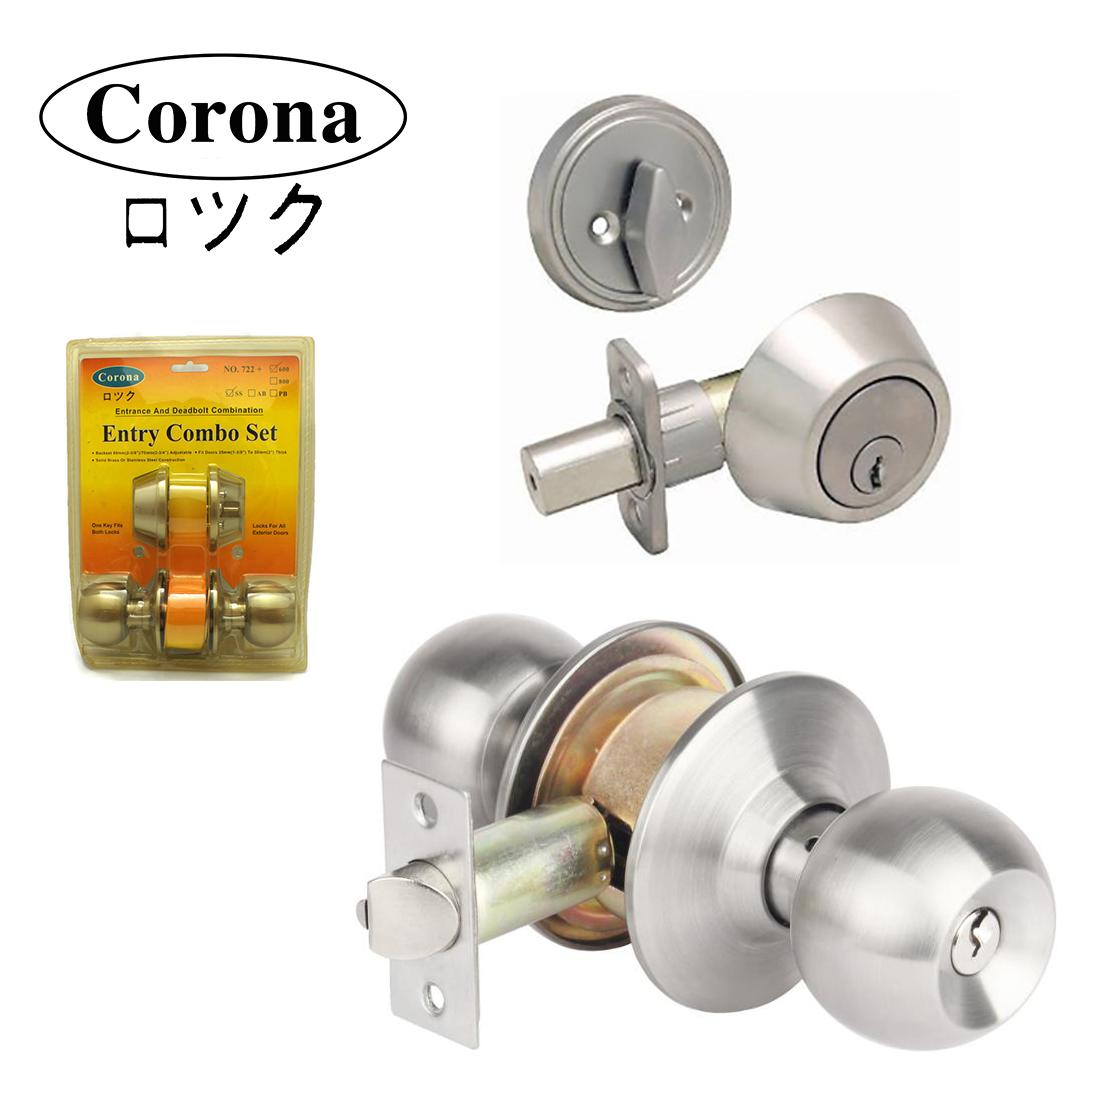 Corona 722/600 Entrance Door Knob and Single Cylinder Deadbolt Combination Lock (Stainless Steel) Philippines